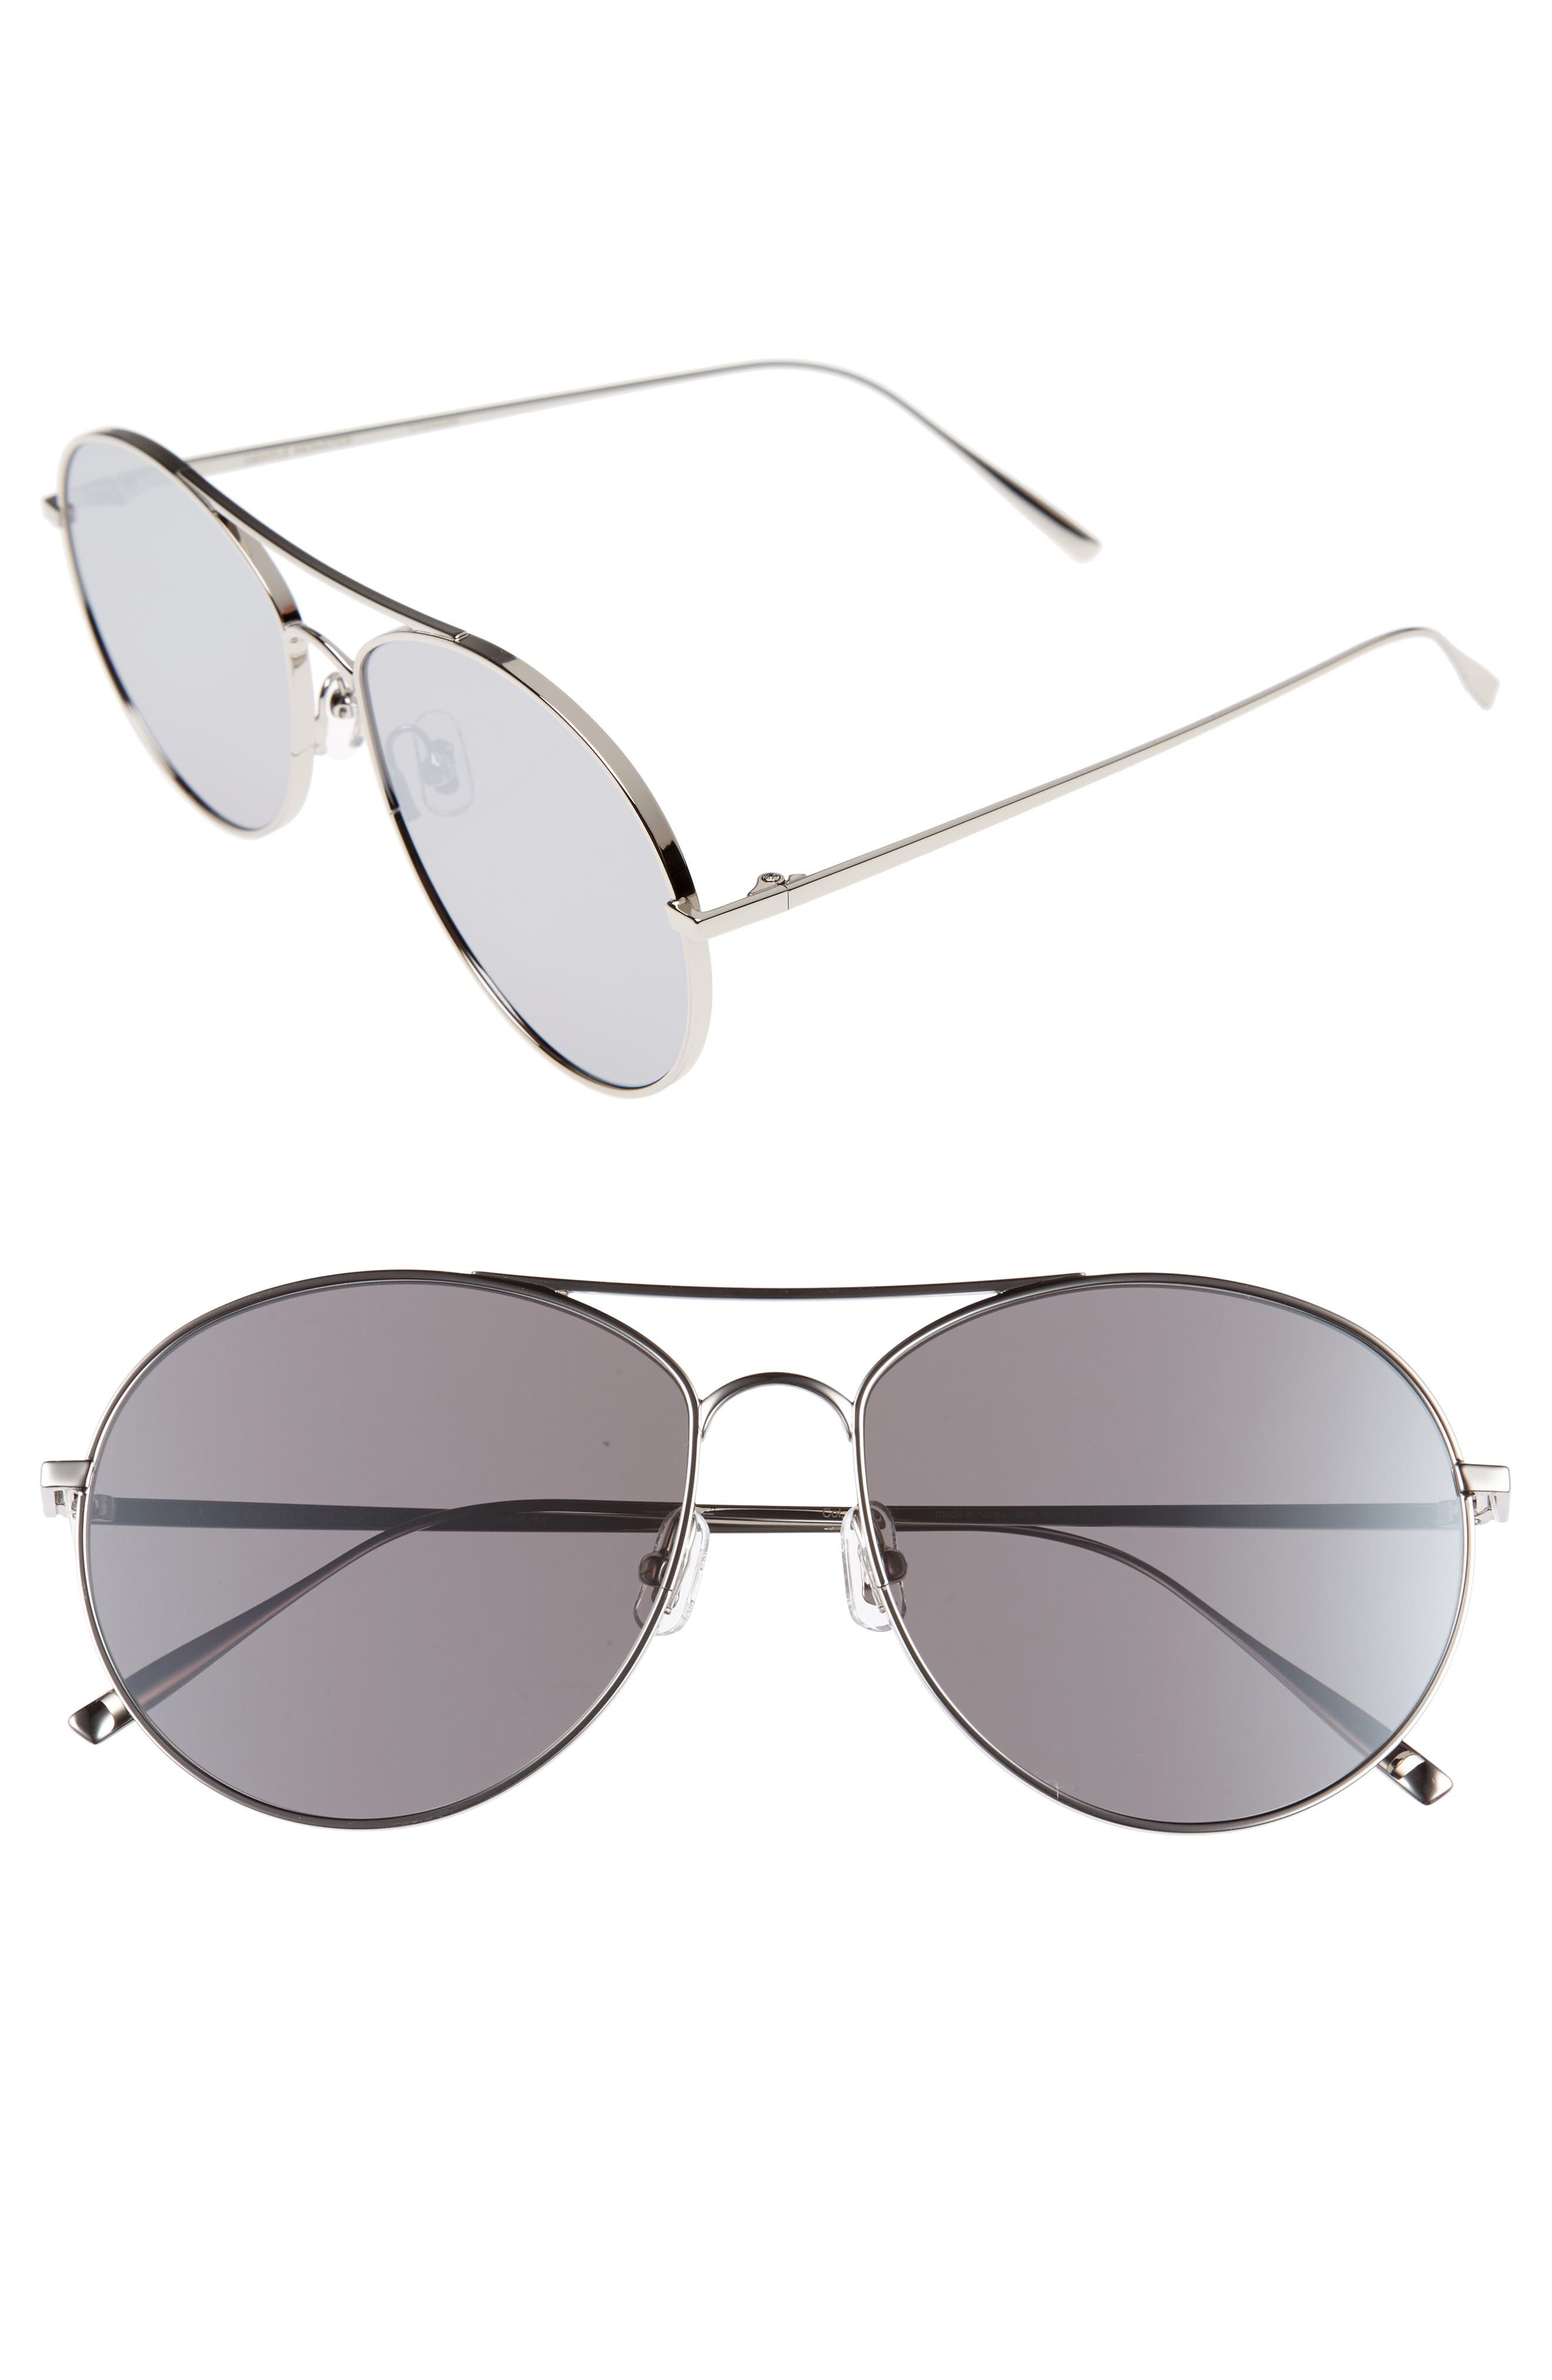 Ranny Ring 58mm Aviator Sunglasses,                             Main thumbnail 1, color,                             Silver Mirror